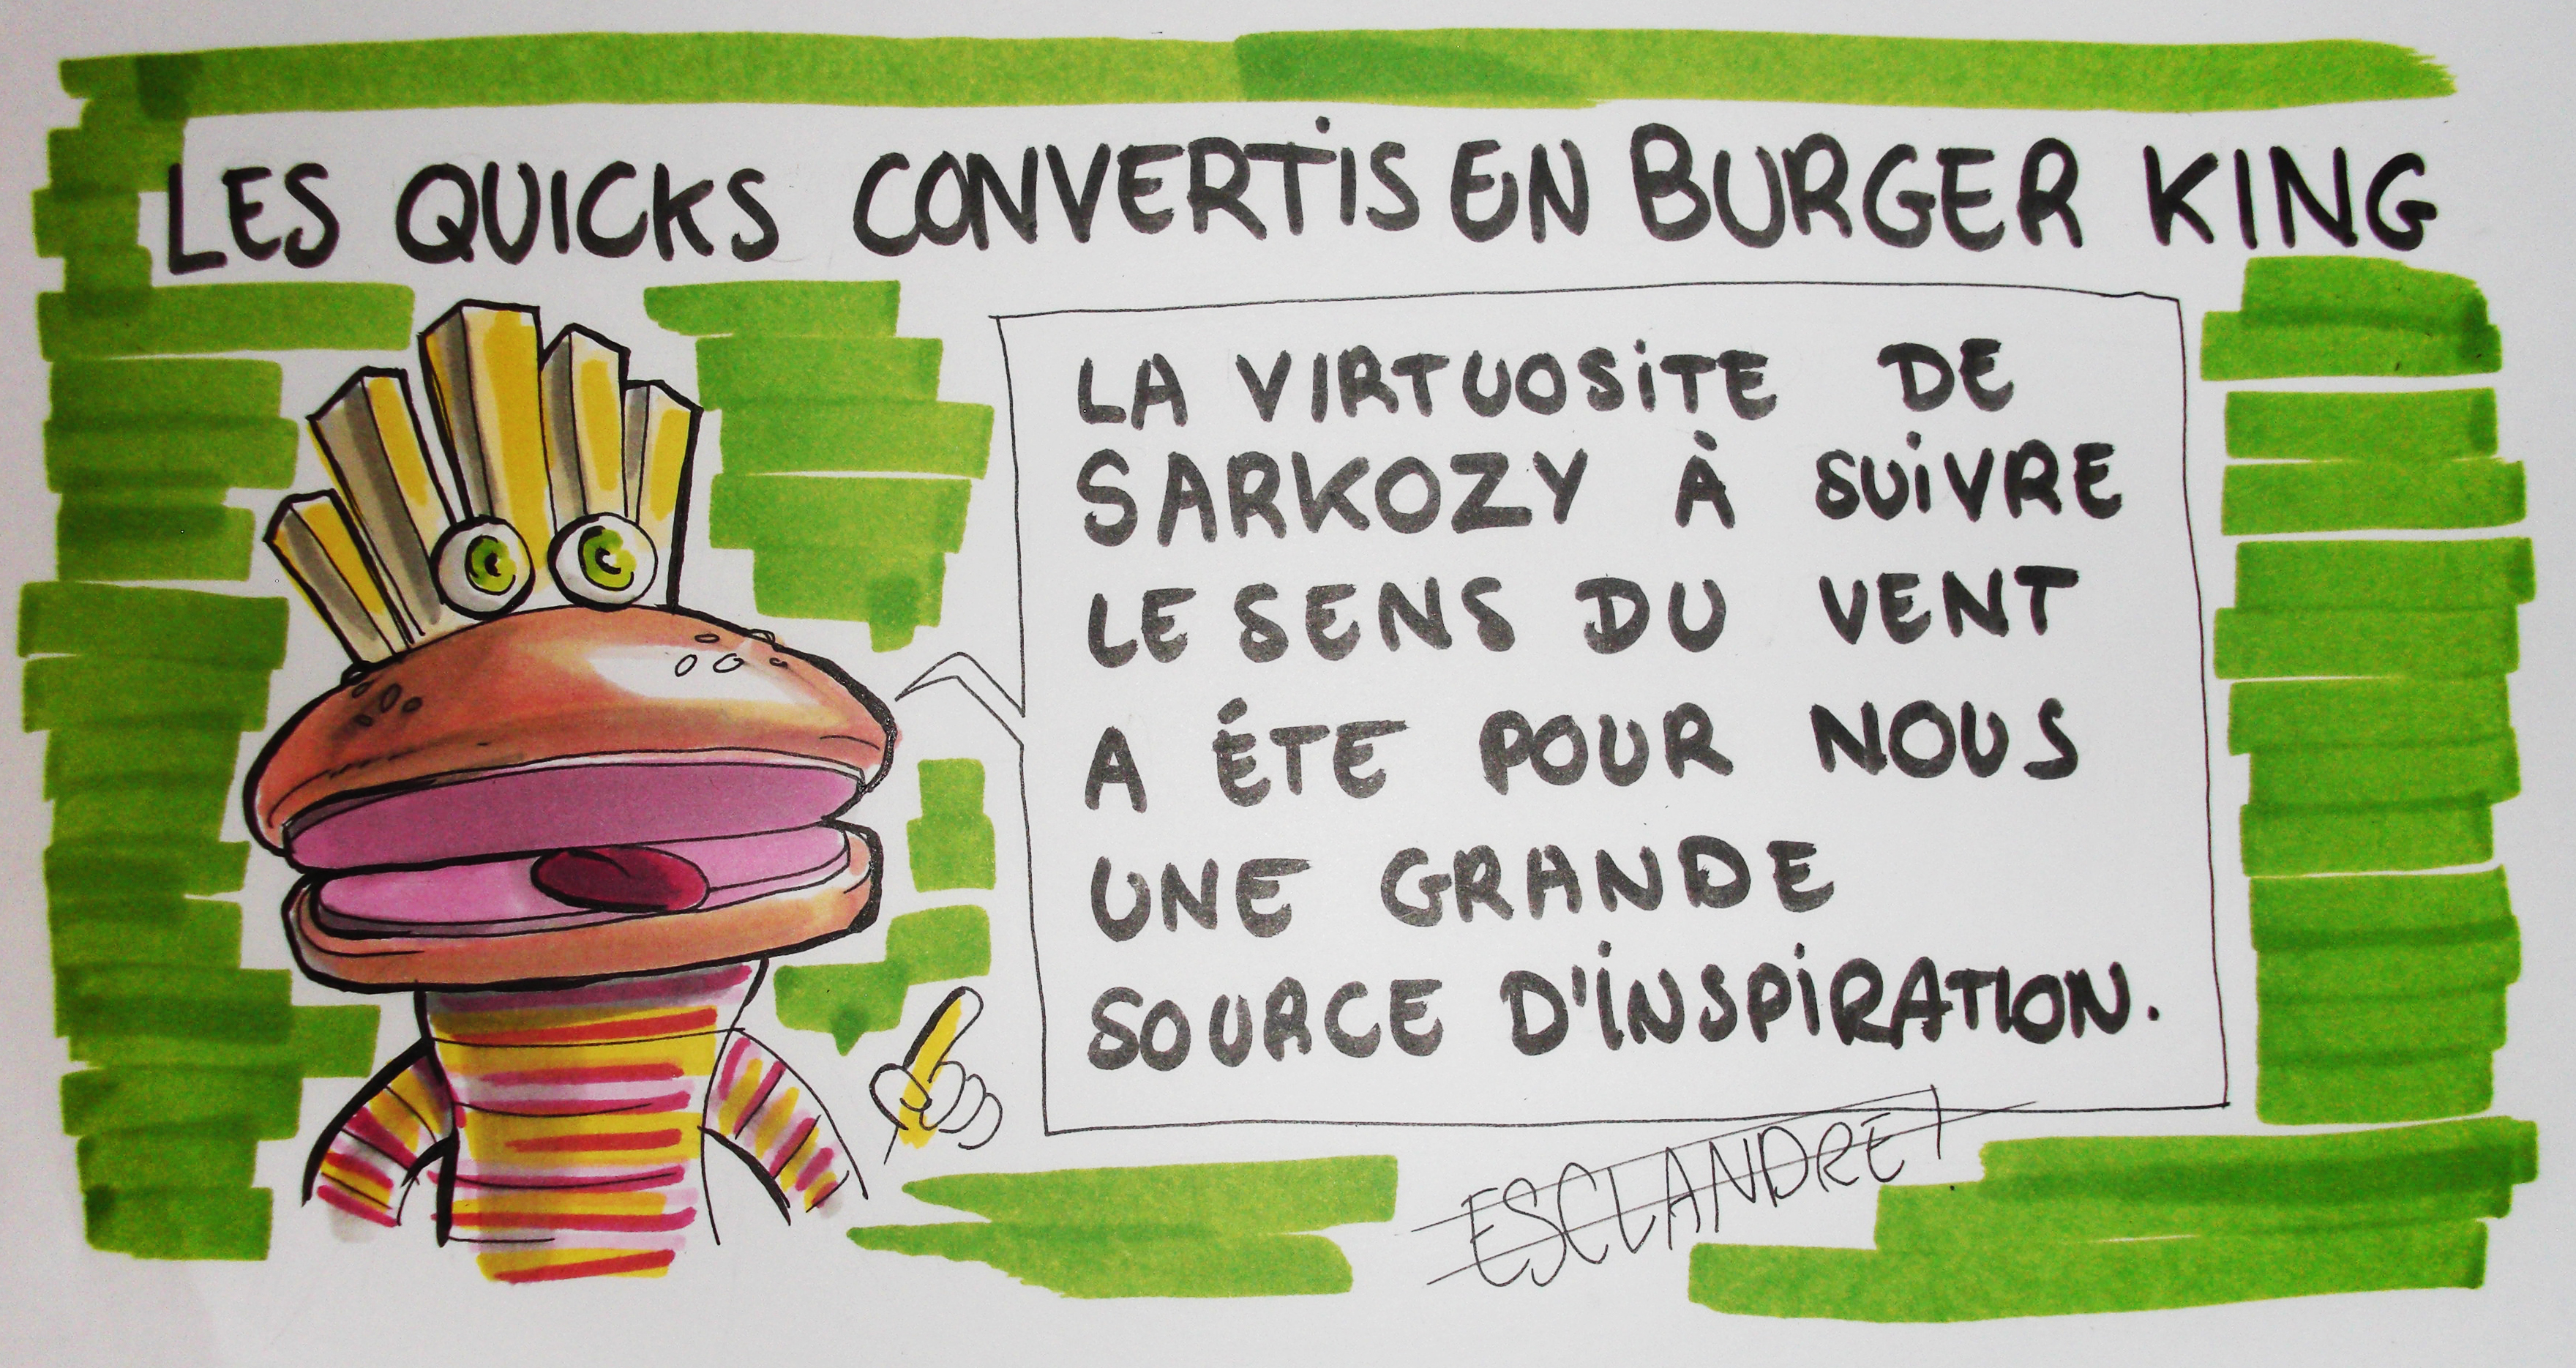 Les Quicks convertis en Burger King